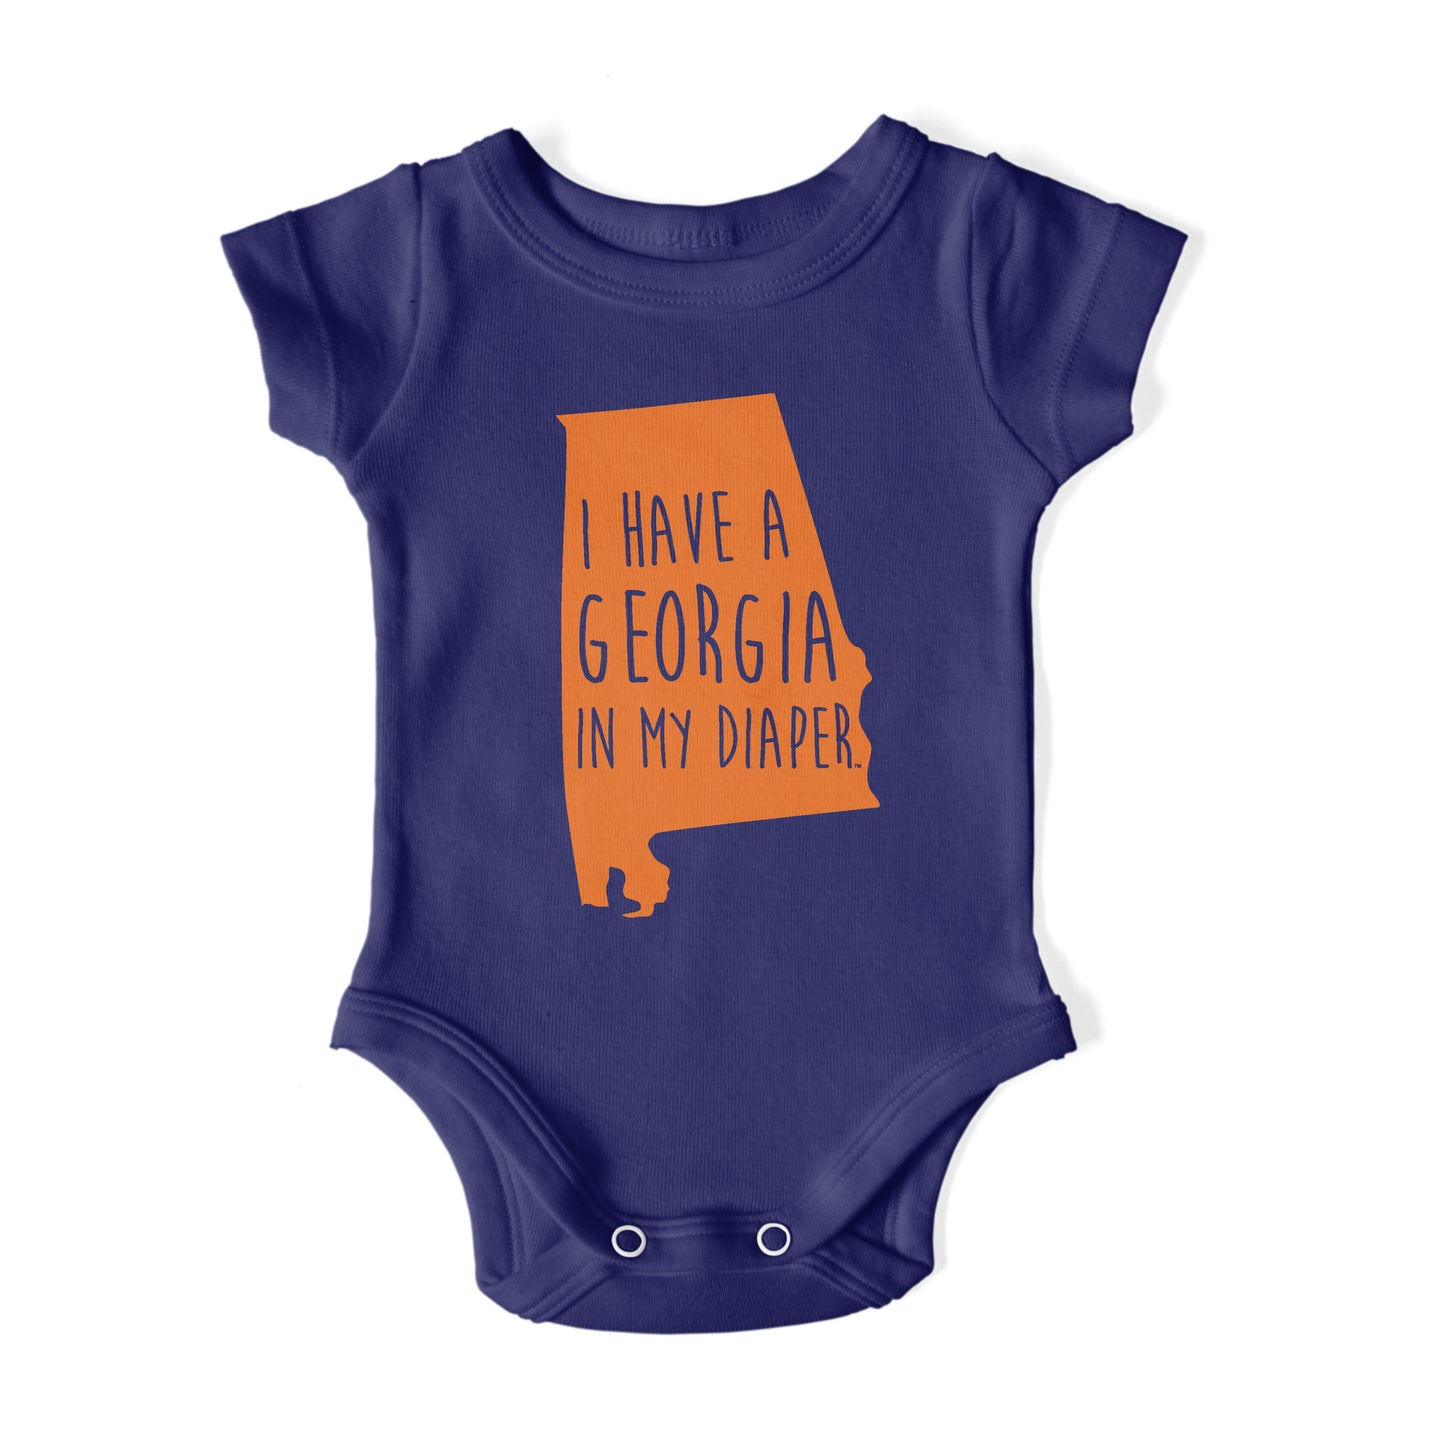 I HAVE A GEORGIA IN MY DIAPER Baby One Piece